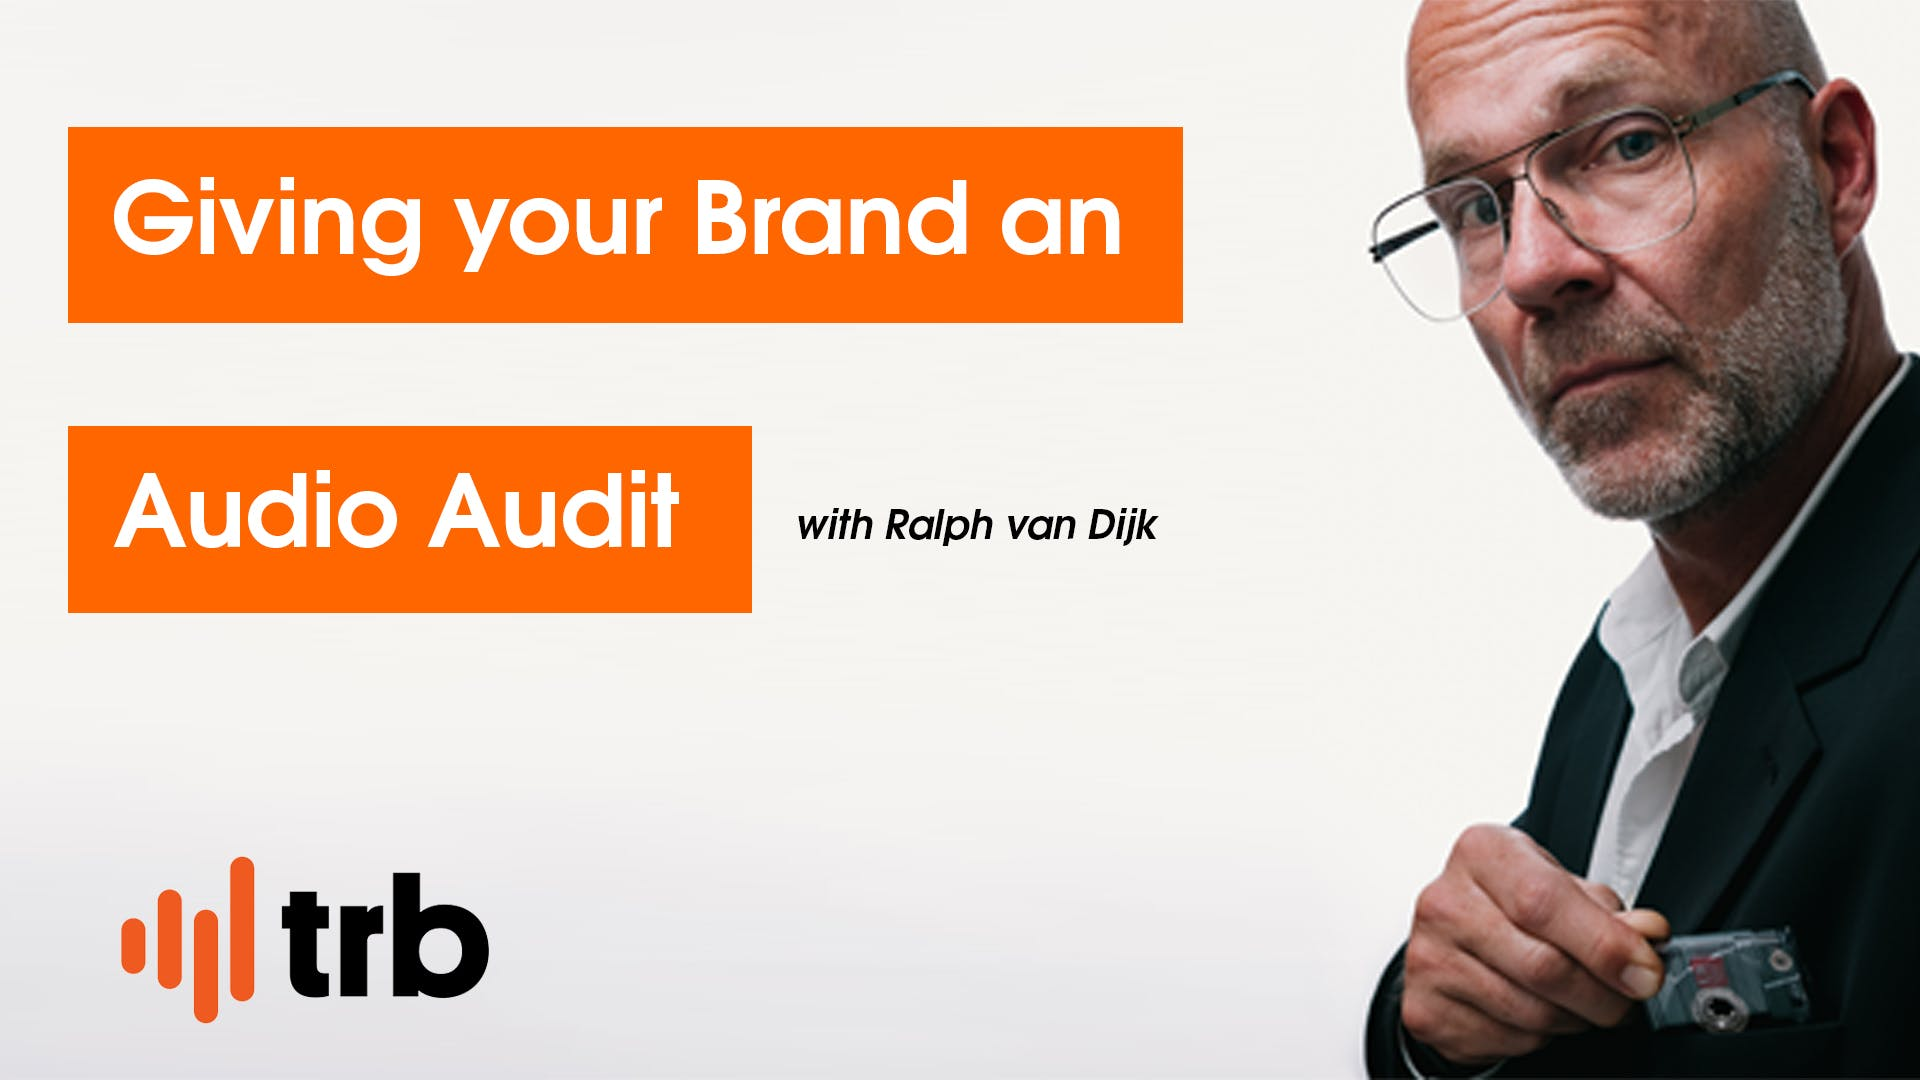 Giving your Brand an Audio Audit